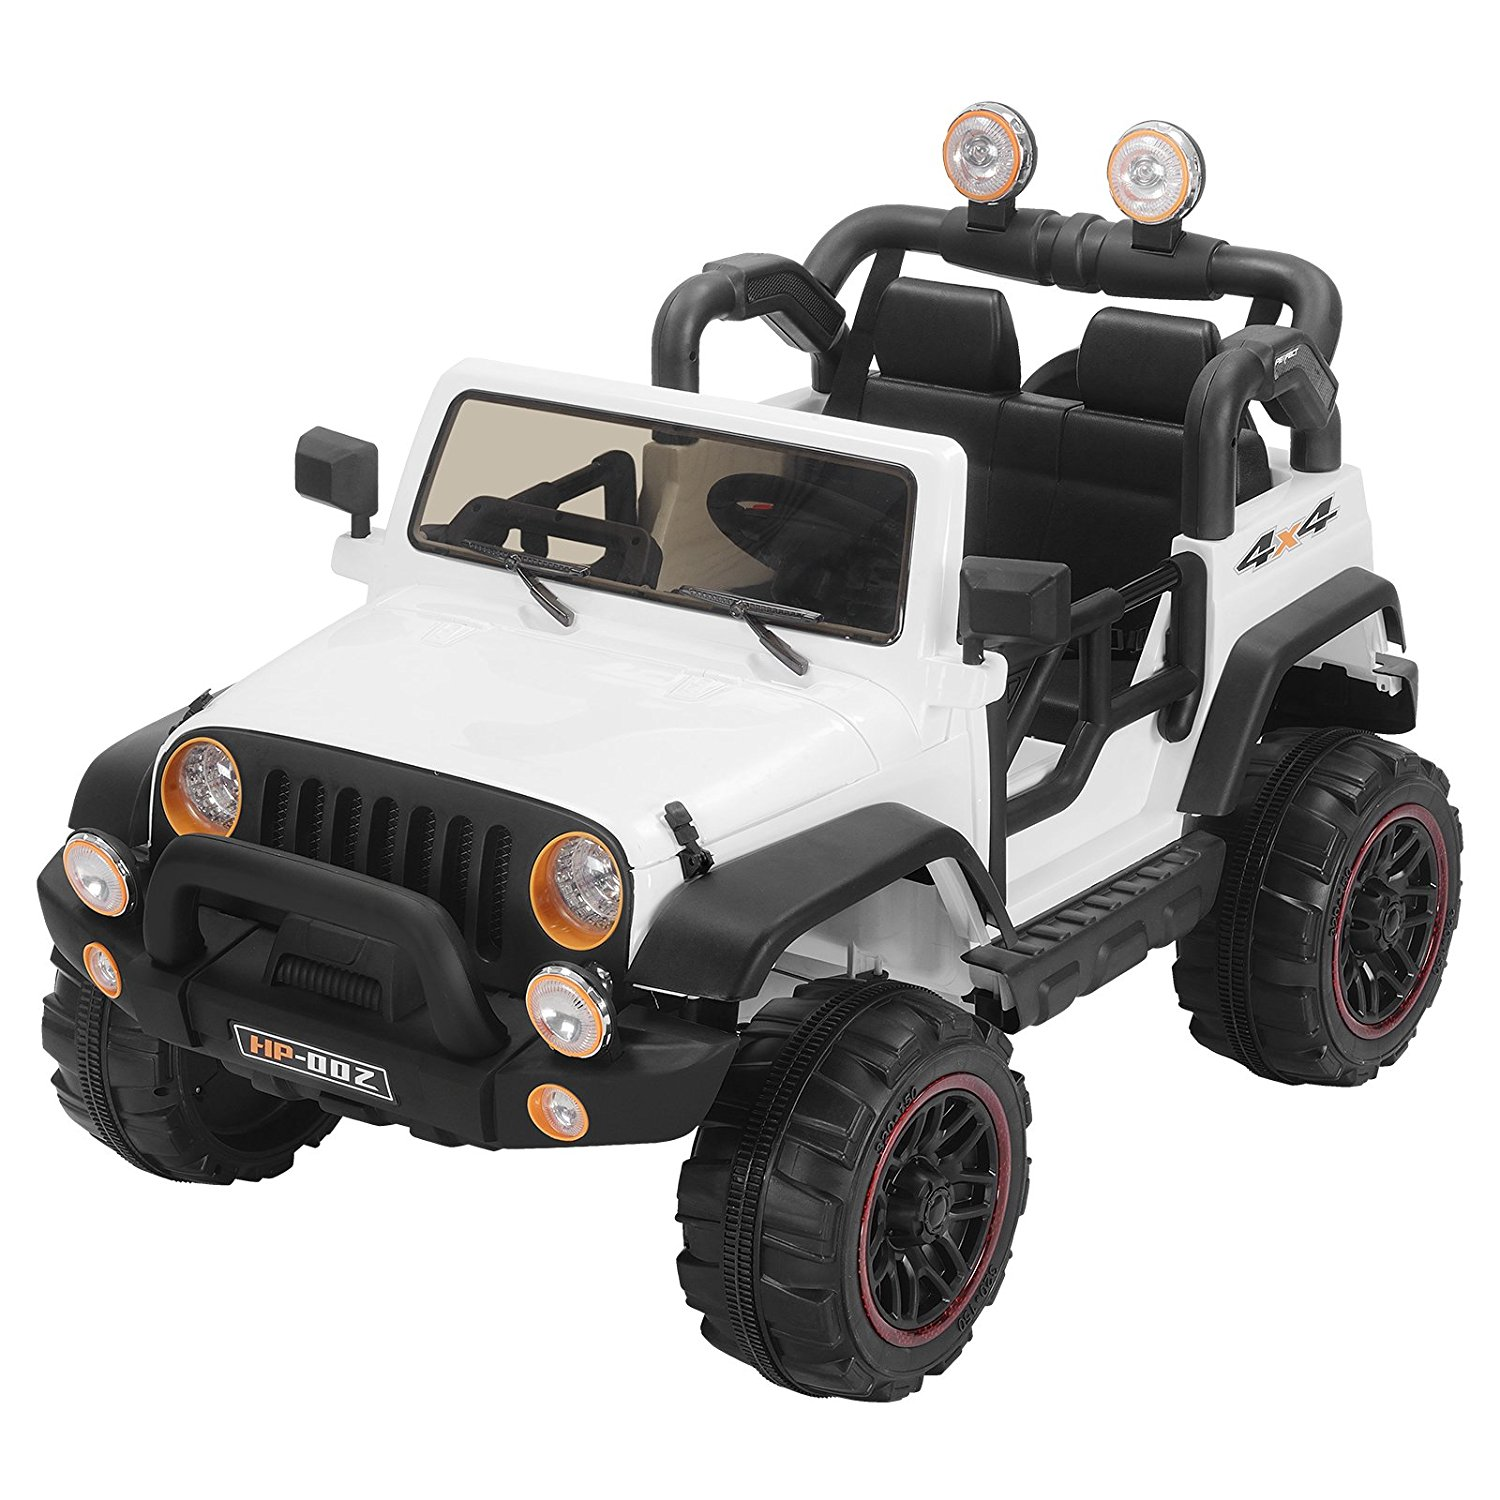 Uenjoy Kids Power Wheels 12V Electric Ride on Cars with Remote Control 2 Speed White